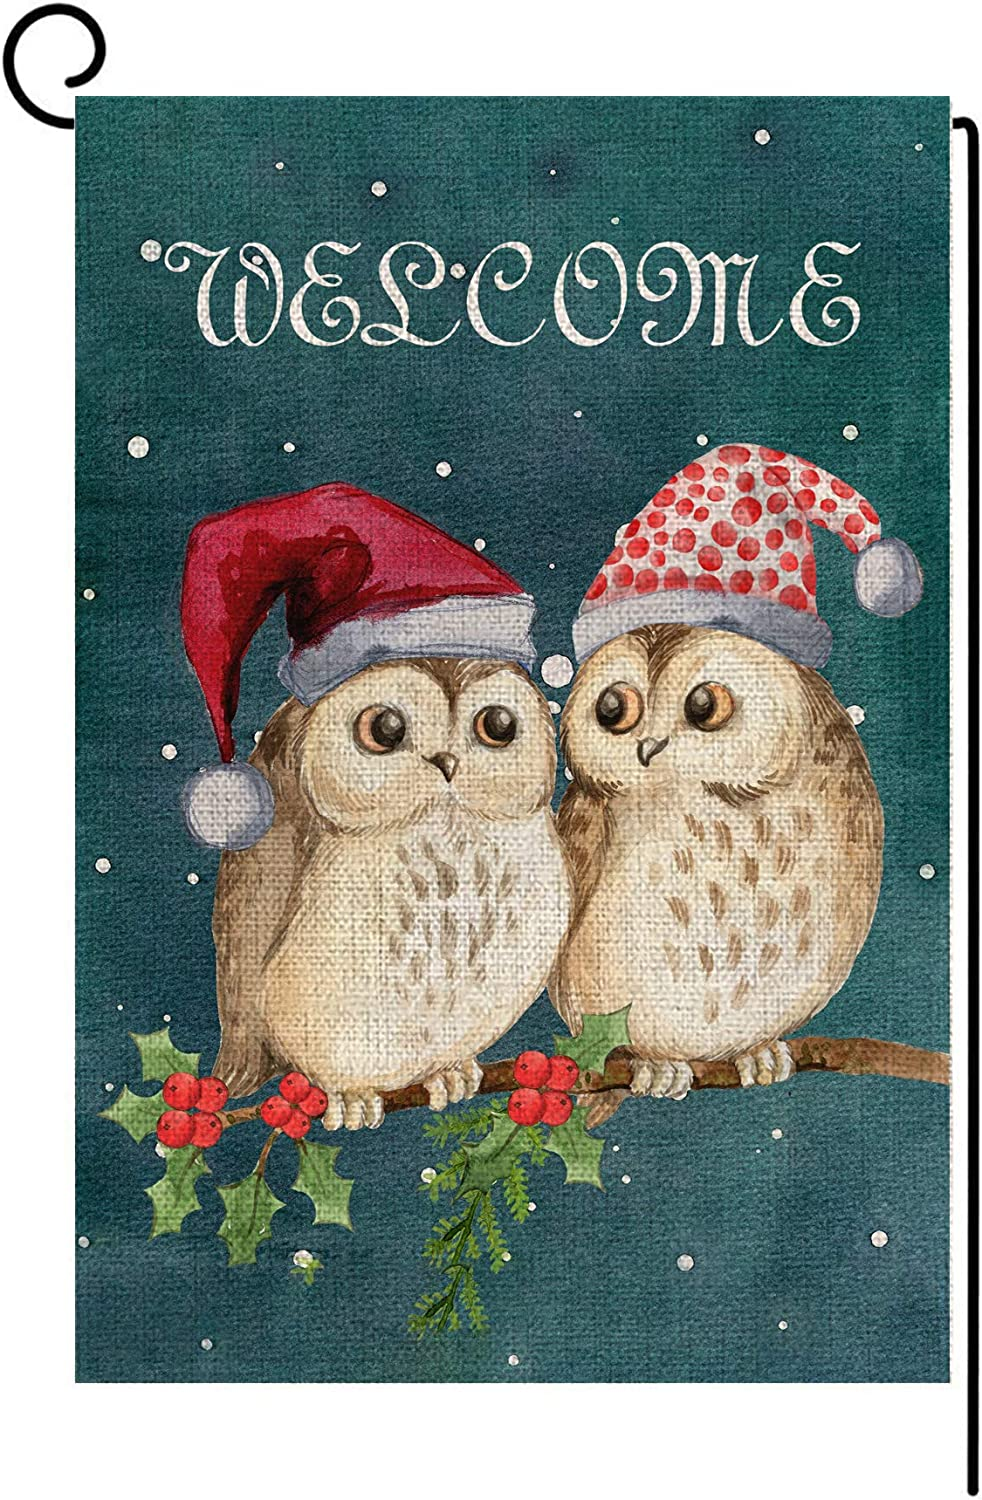 LANMEI Cute Owl Christmas Garden Flag Vertical Double Sided Welcome Garden Flag, Christmas Winter Holiday Rustic Yard Outdoor Decoration 12.5 x 18 Inch